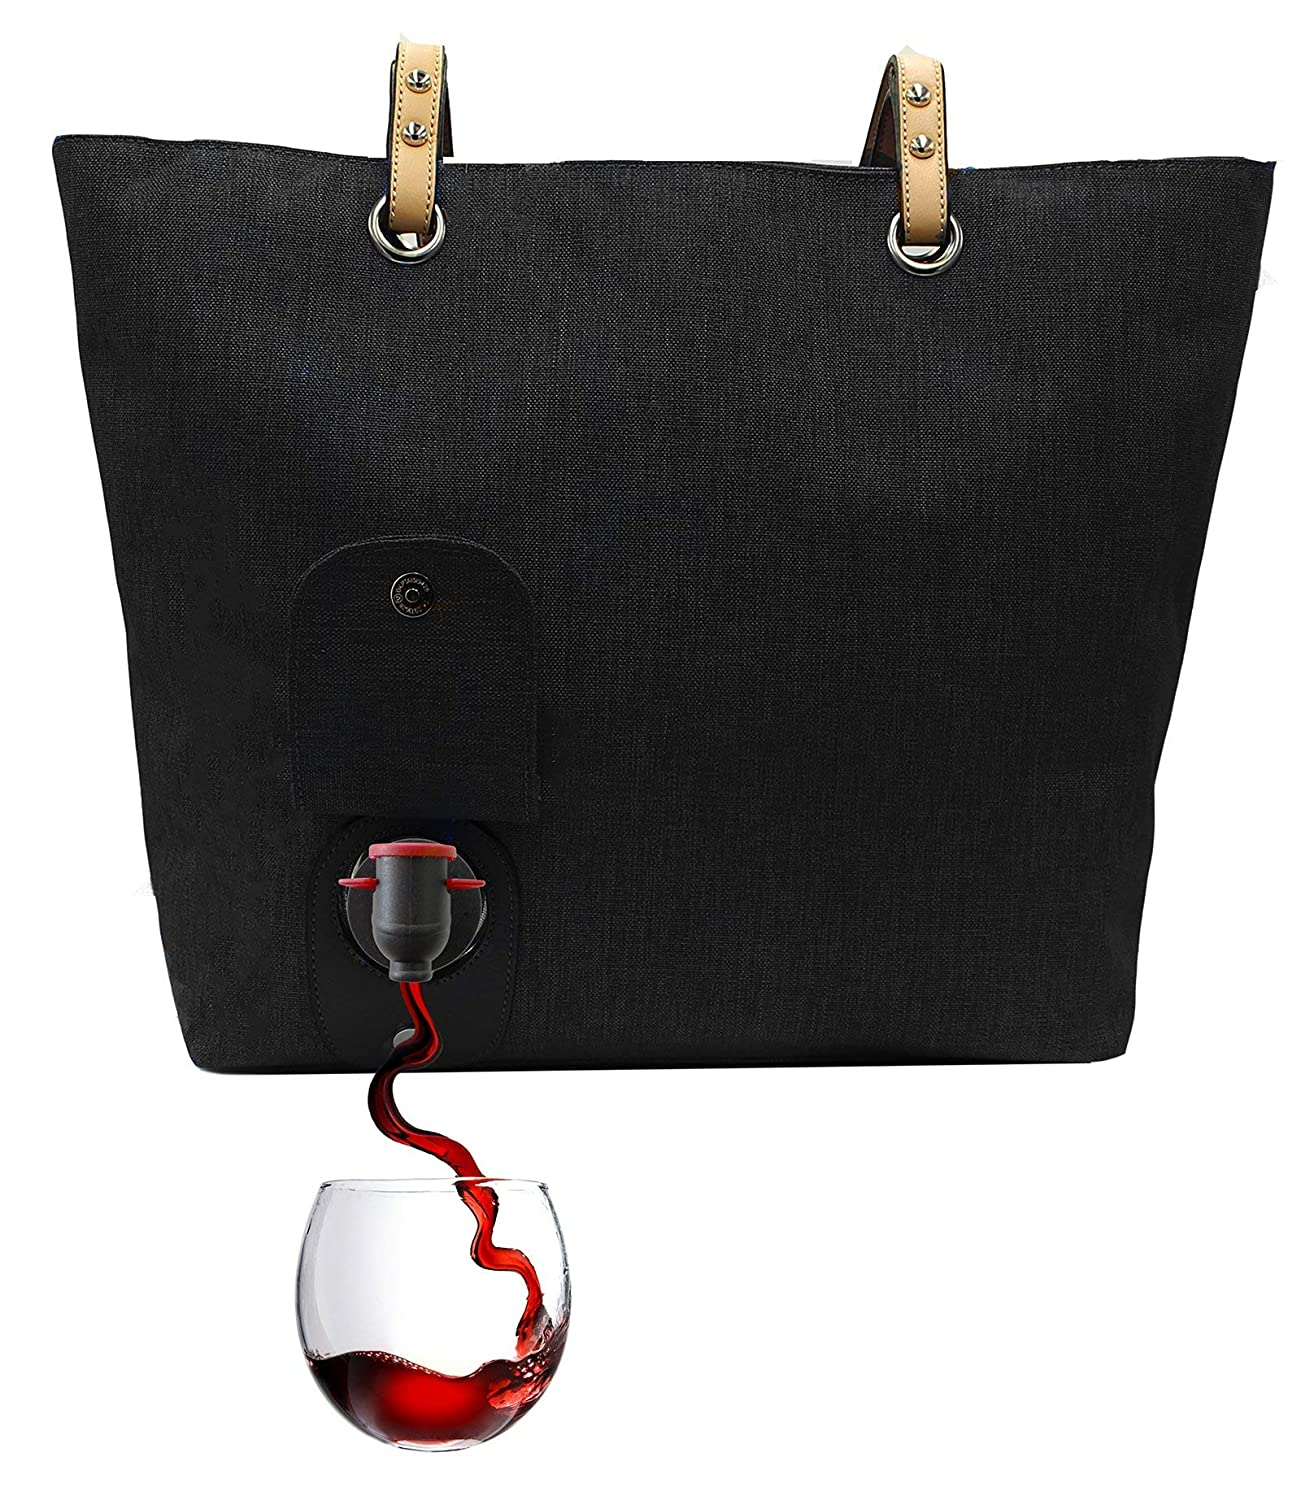 PortoVino City Tote Black - Fashionable Wine Purse with Hidden, Insulated Compartment, Holds 2 bottles of Wine!